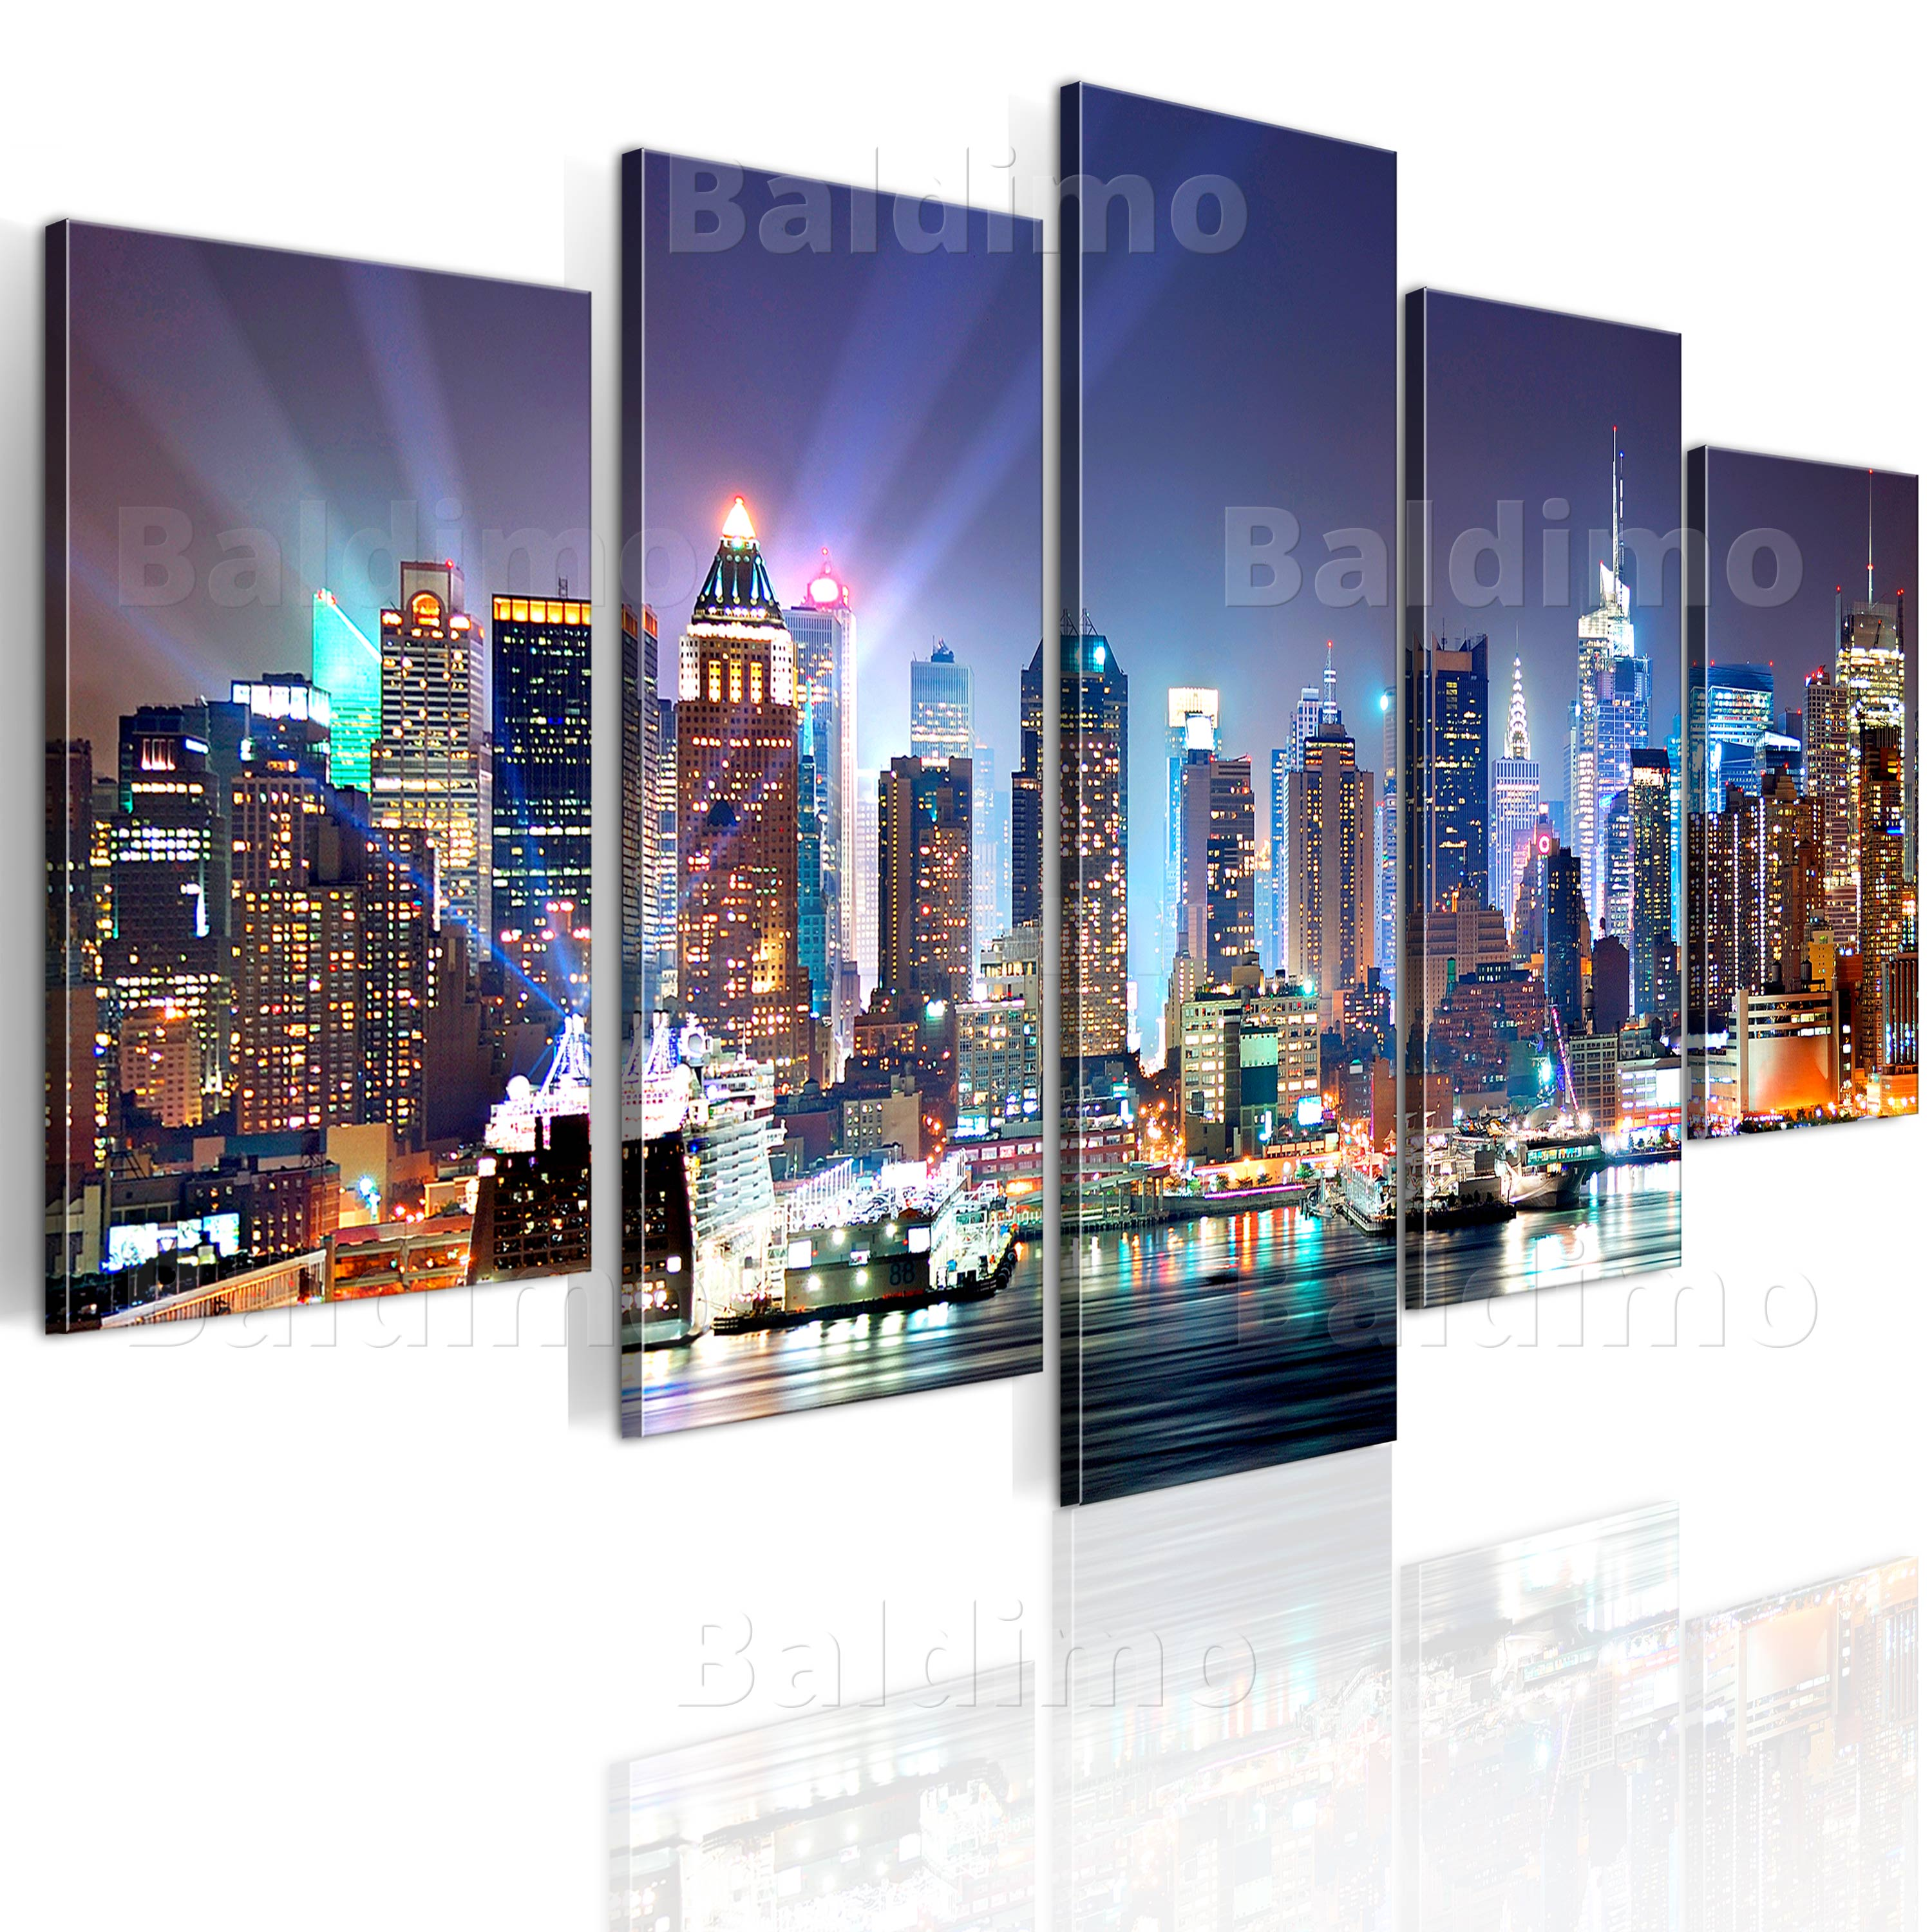 leinwand bilder xxl kunstdruck wandbild new york nyc skyline stadt 9020099 ebay. Black Bedroom Furniture Sets. Home Design Ideas